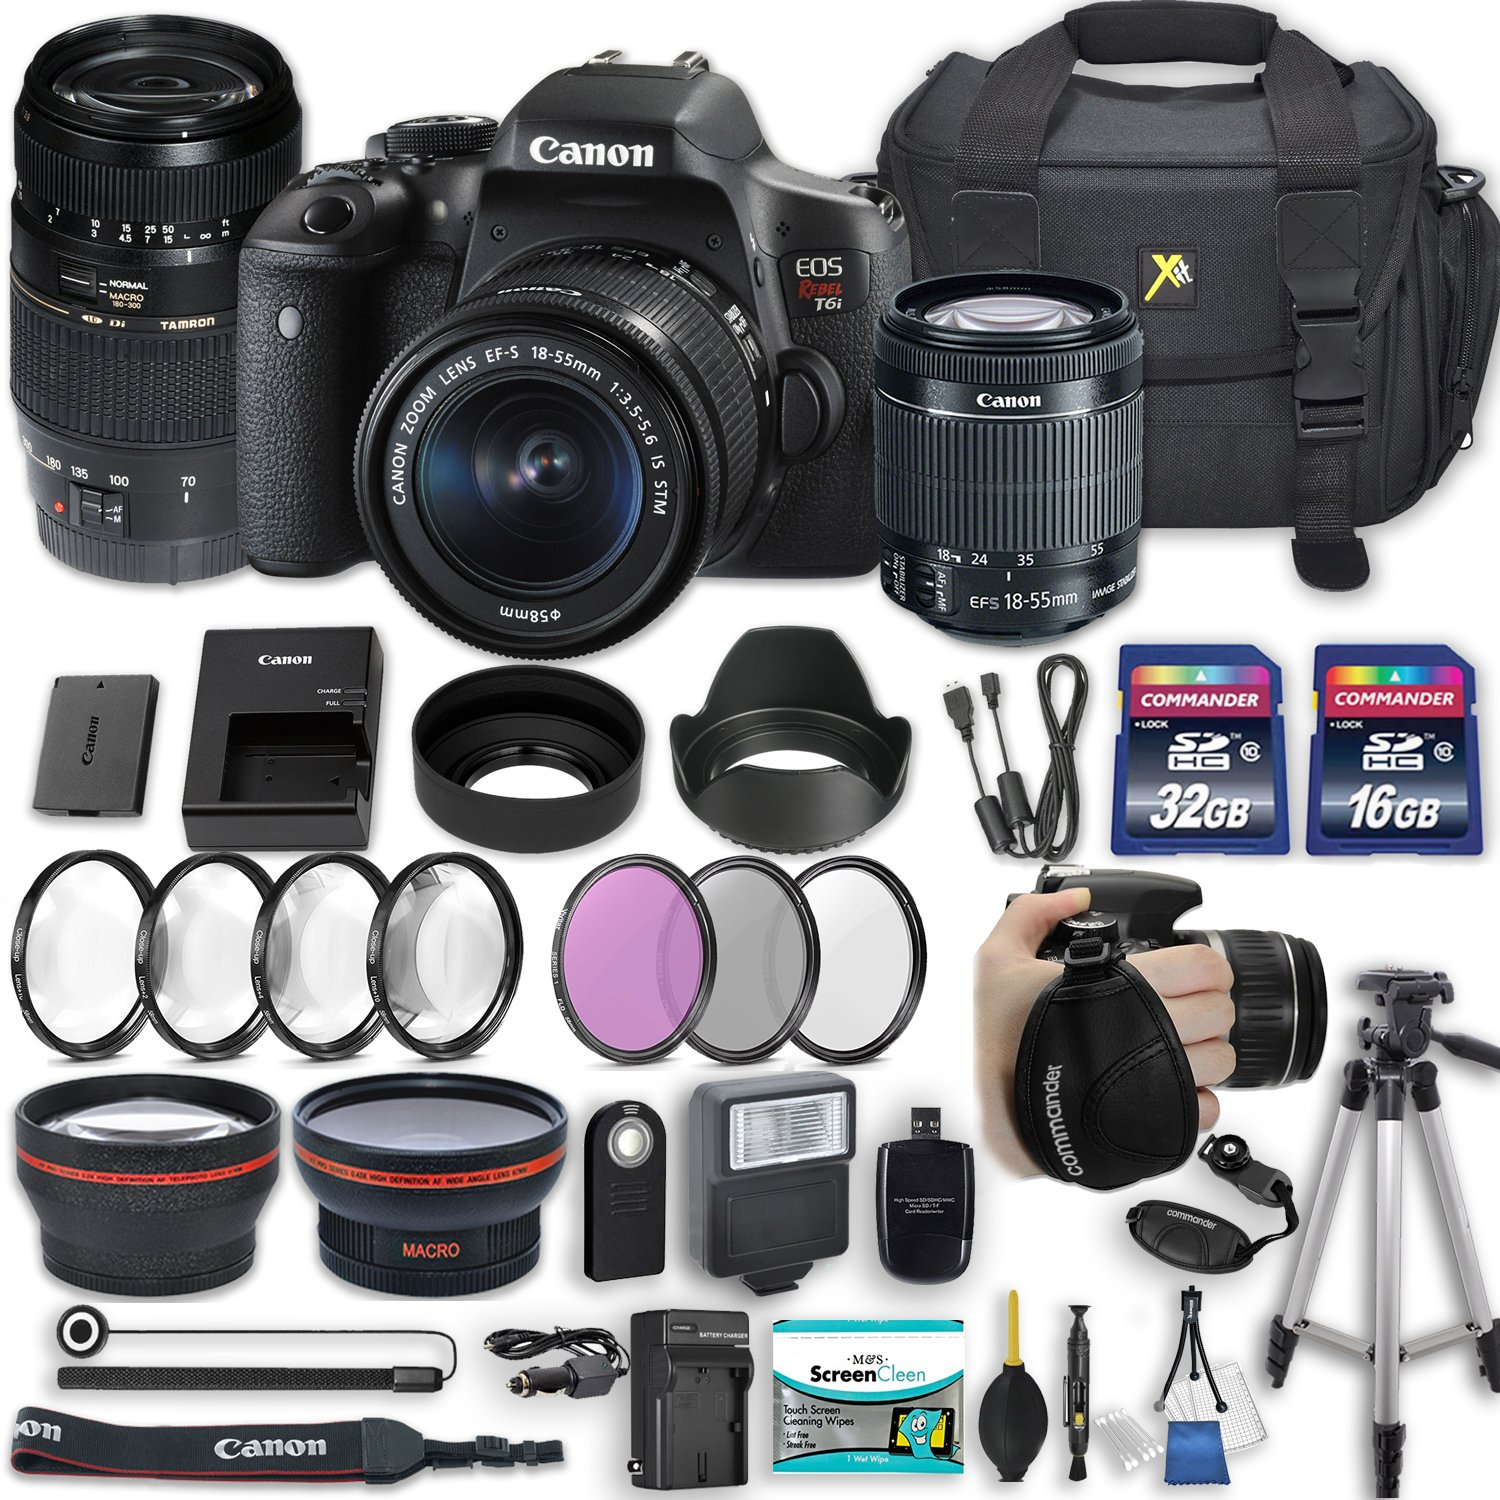 Canon EOS Rebel T6i 24.2 MP DSLR Camera with Canon EF-S 18-55mm f/3.5-5.6 IS STM Lens + Tamron 70-300mm f/4-5.6 Di LD Lens + 2 Memory Cards + 2 Aux Lenses + 50'' Tripod + Accessories Bundle (24 Items) by Canon